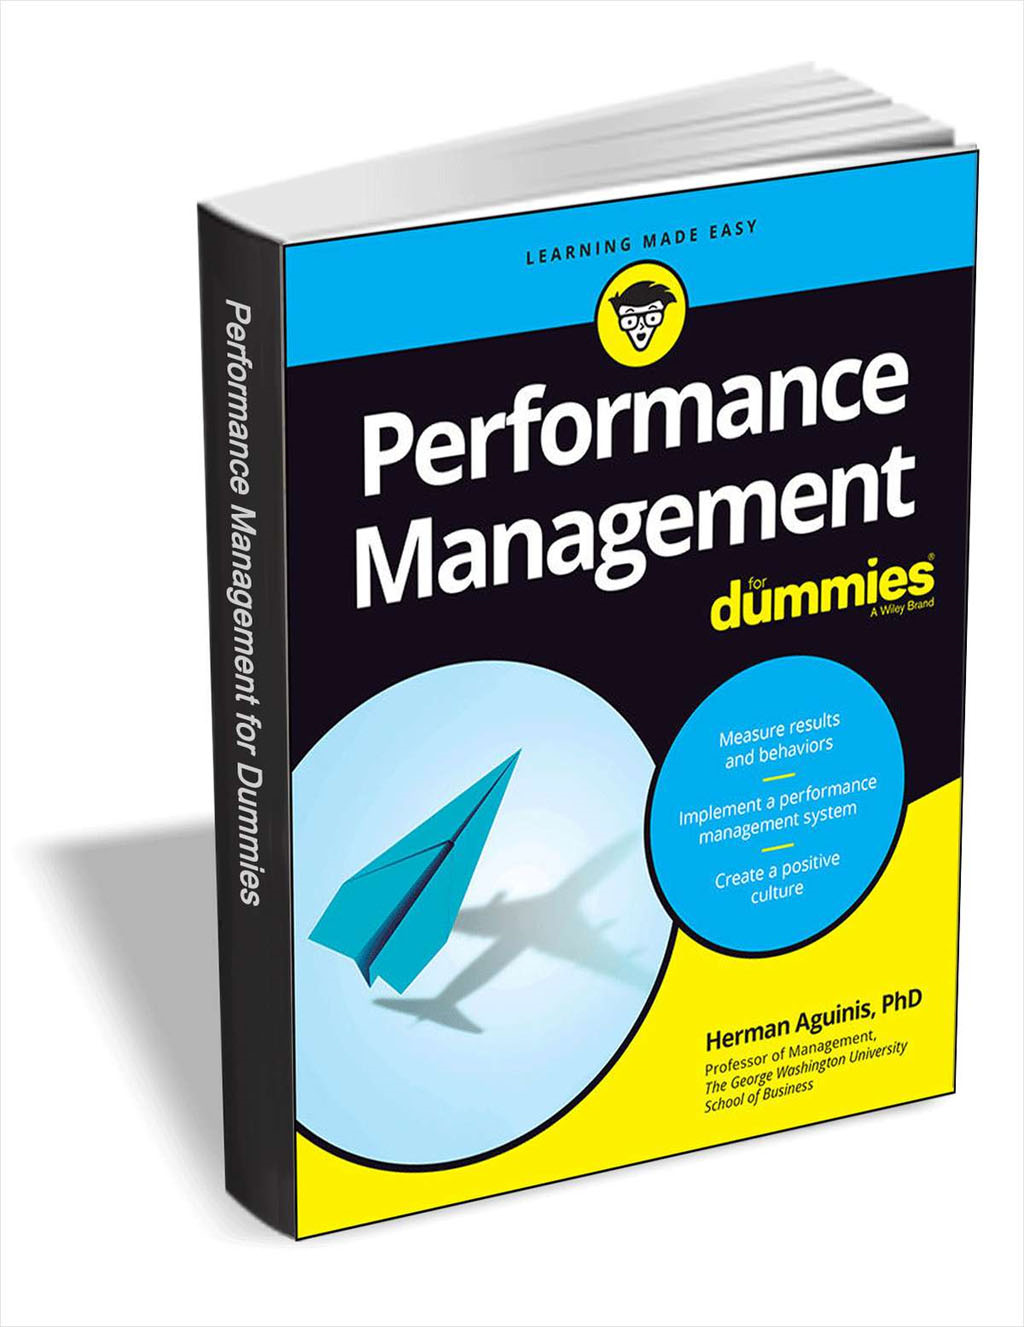 Performance Management For Dummies ($19.99 Value) FREE for a Limited Time Screenshot